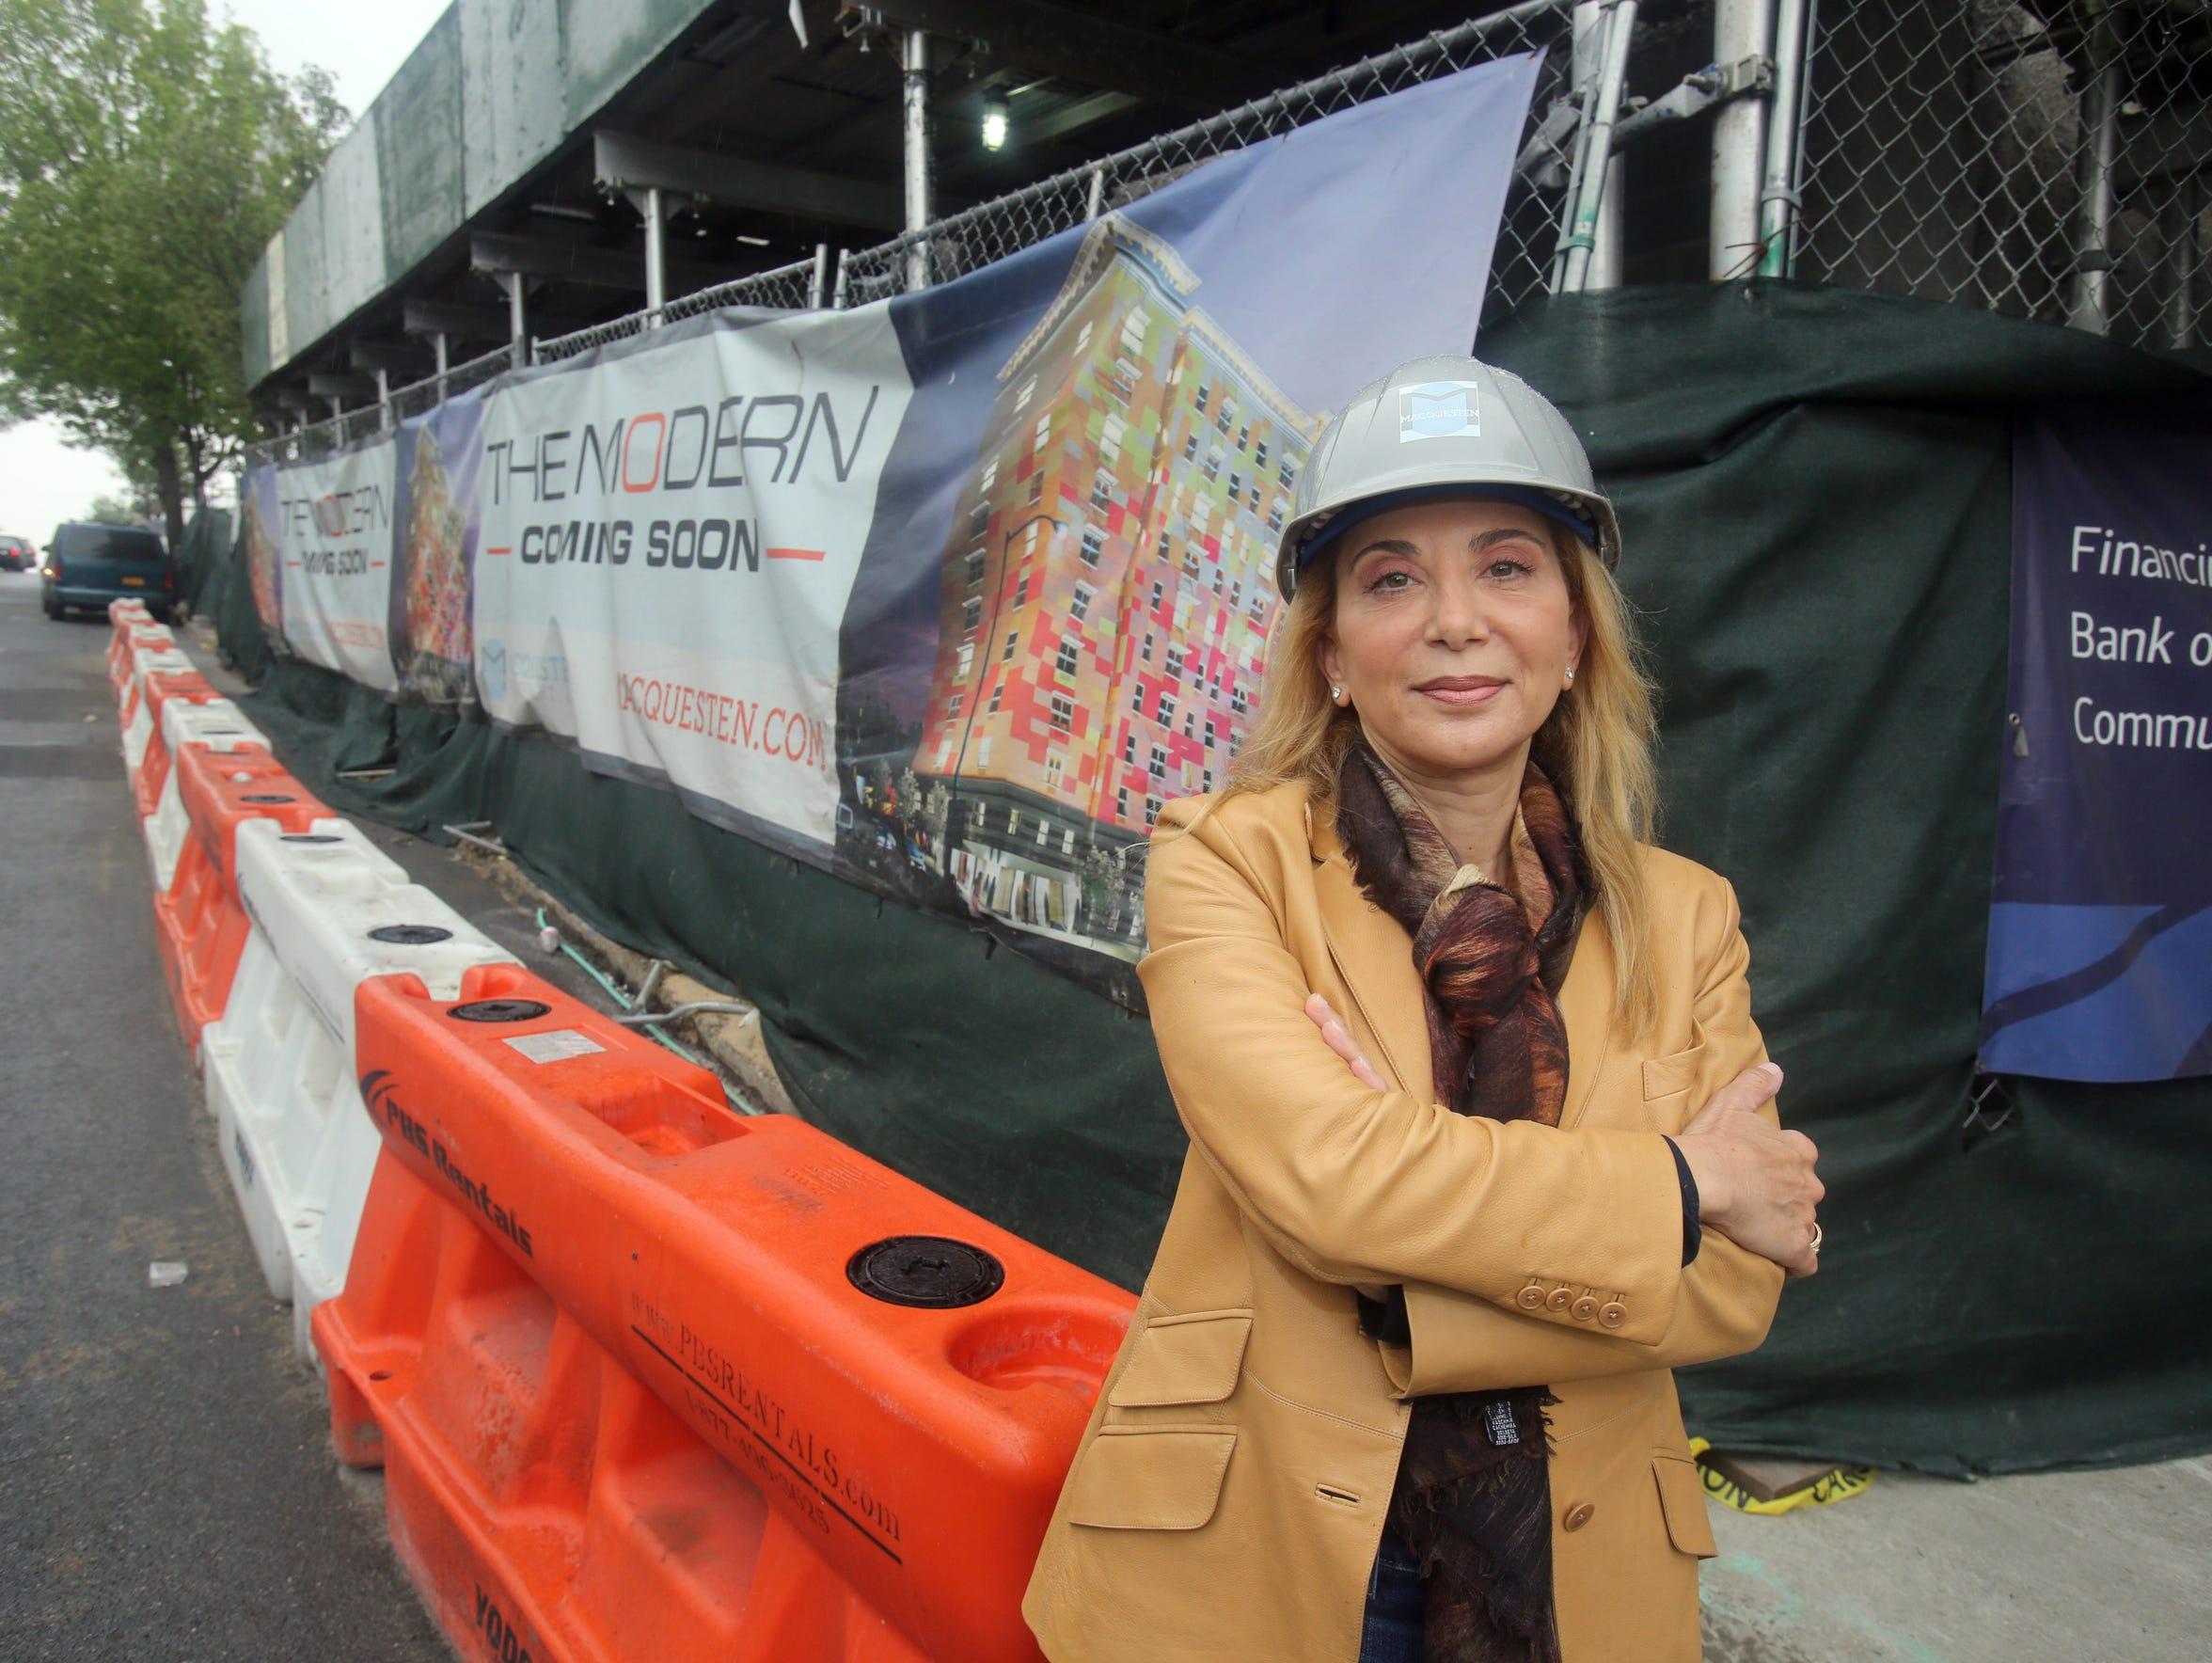 Rella Fogliano, founder and CEO of the MacQuesten Companies, outside an apartment building construction site in Mount Vernon May 13, 2016. She has been a top Cuomo donor and has received state breaks for projects.